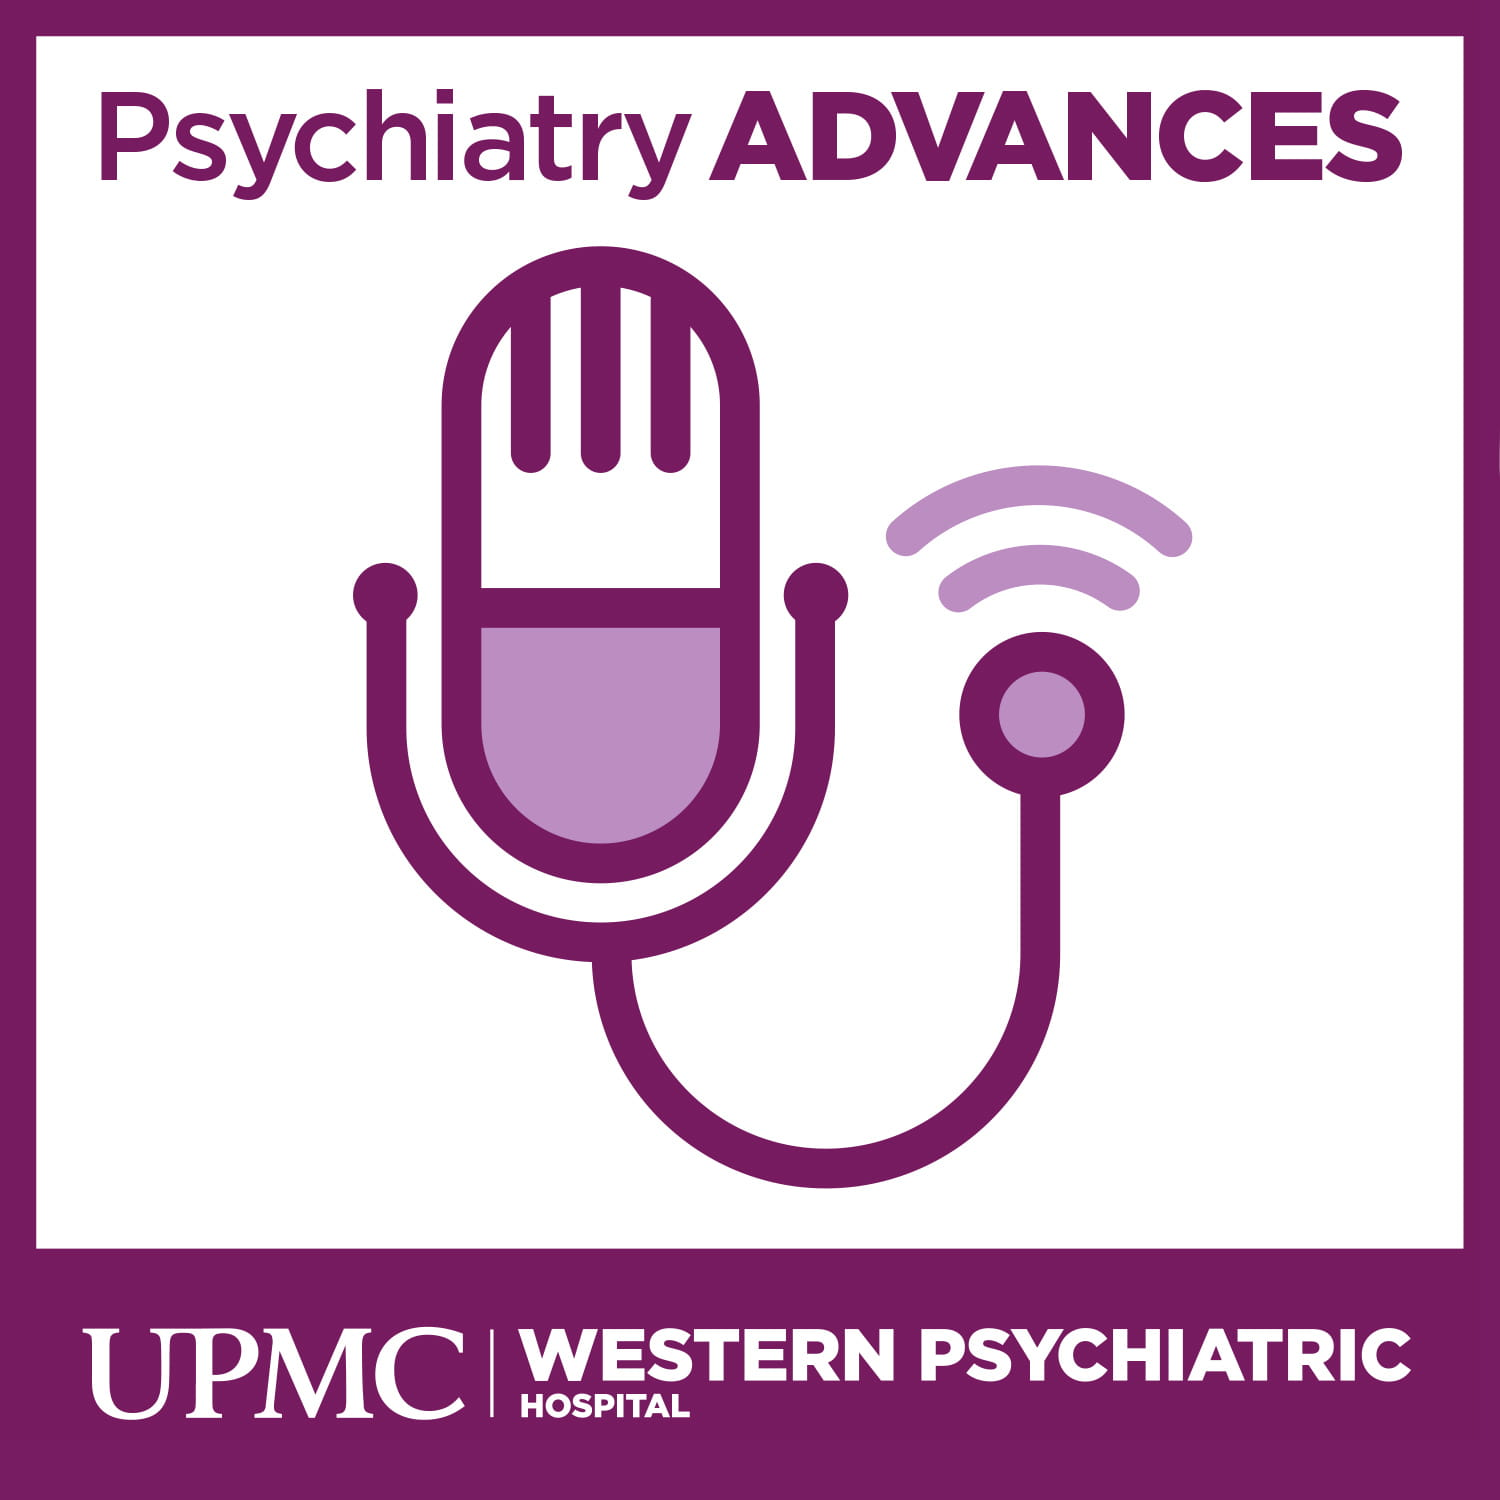 Psychiatry Advances Logo